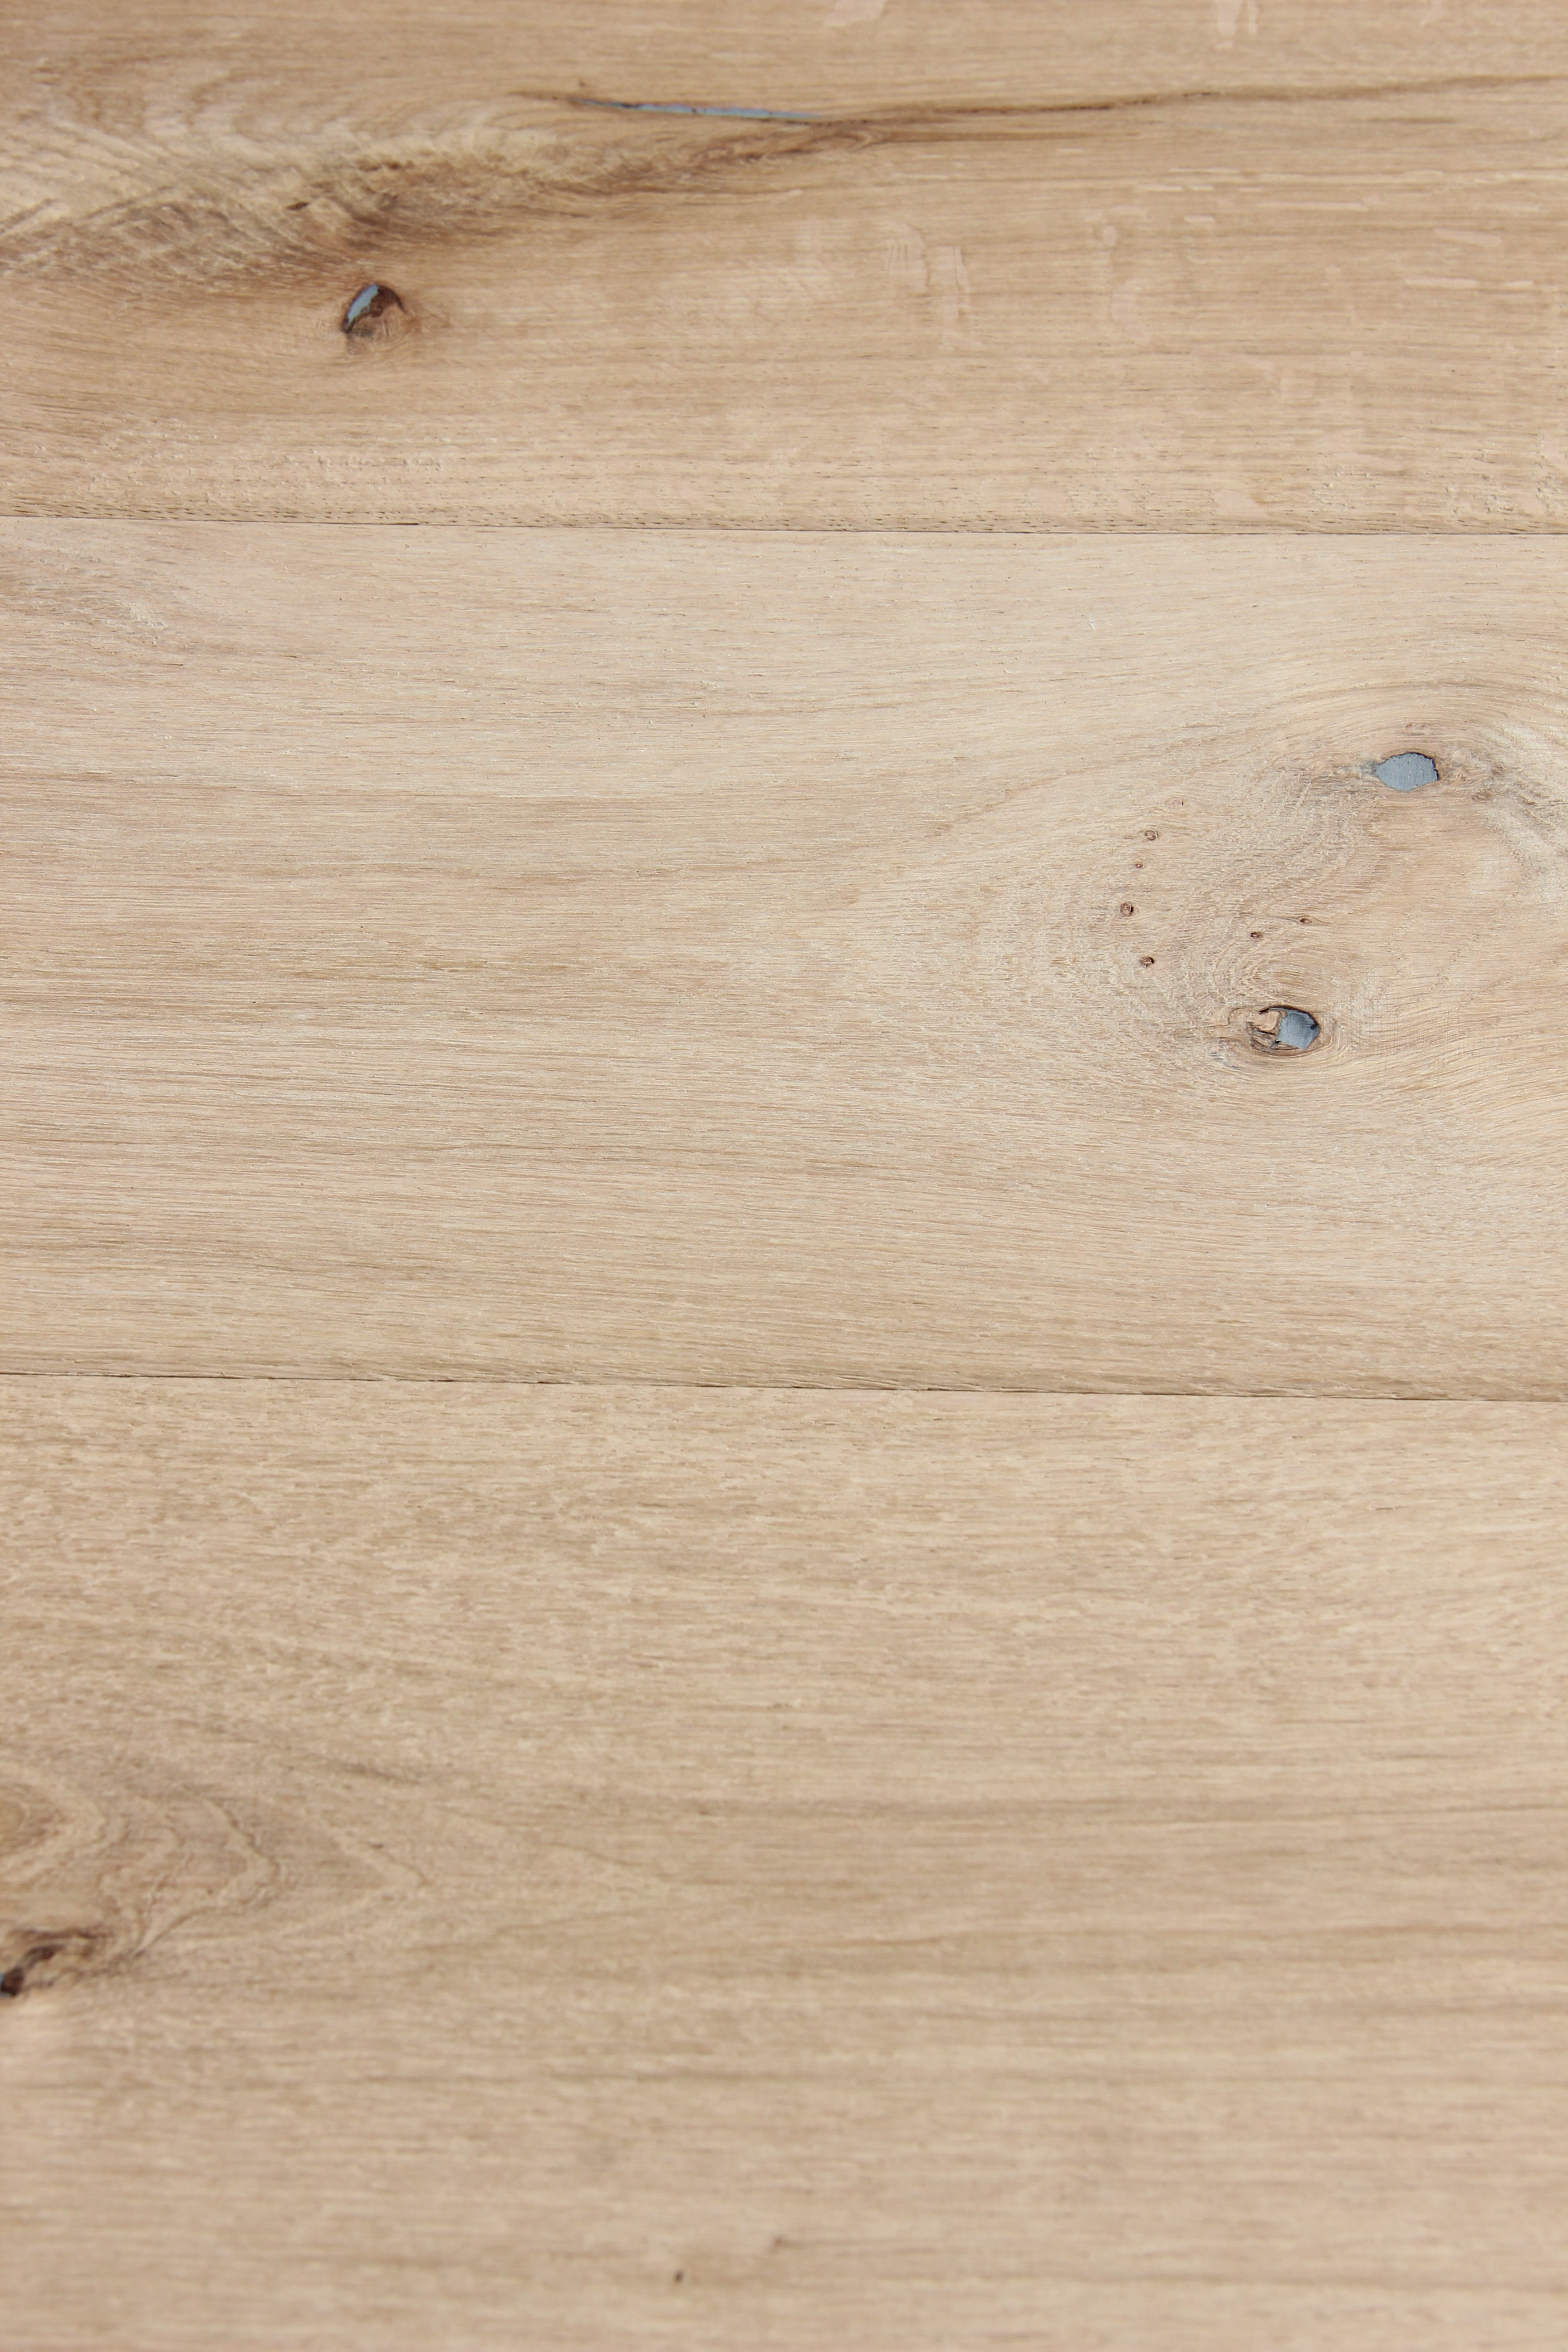 old hardwood floors of free images architecture board grain house texture plank regarding free images architecture board grain house texture plank interior home pattern natural brown room decor modern material surface wood floor